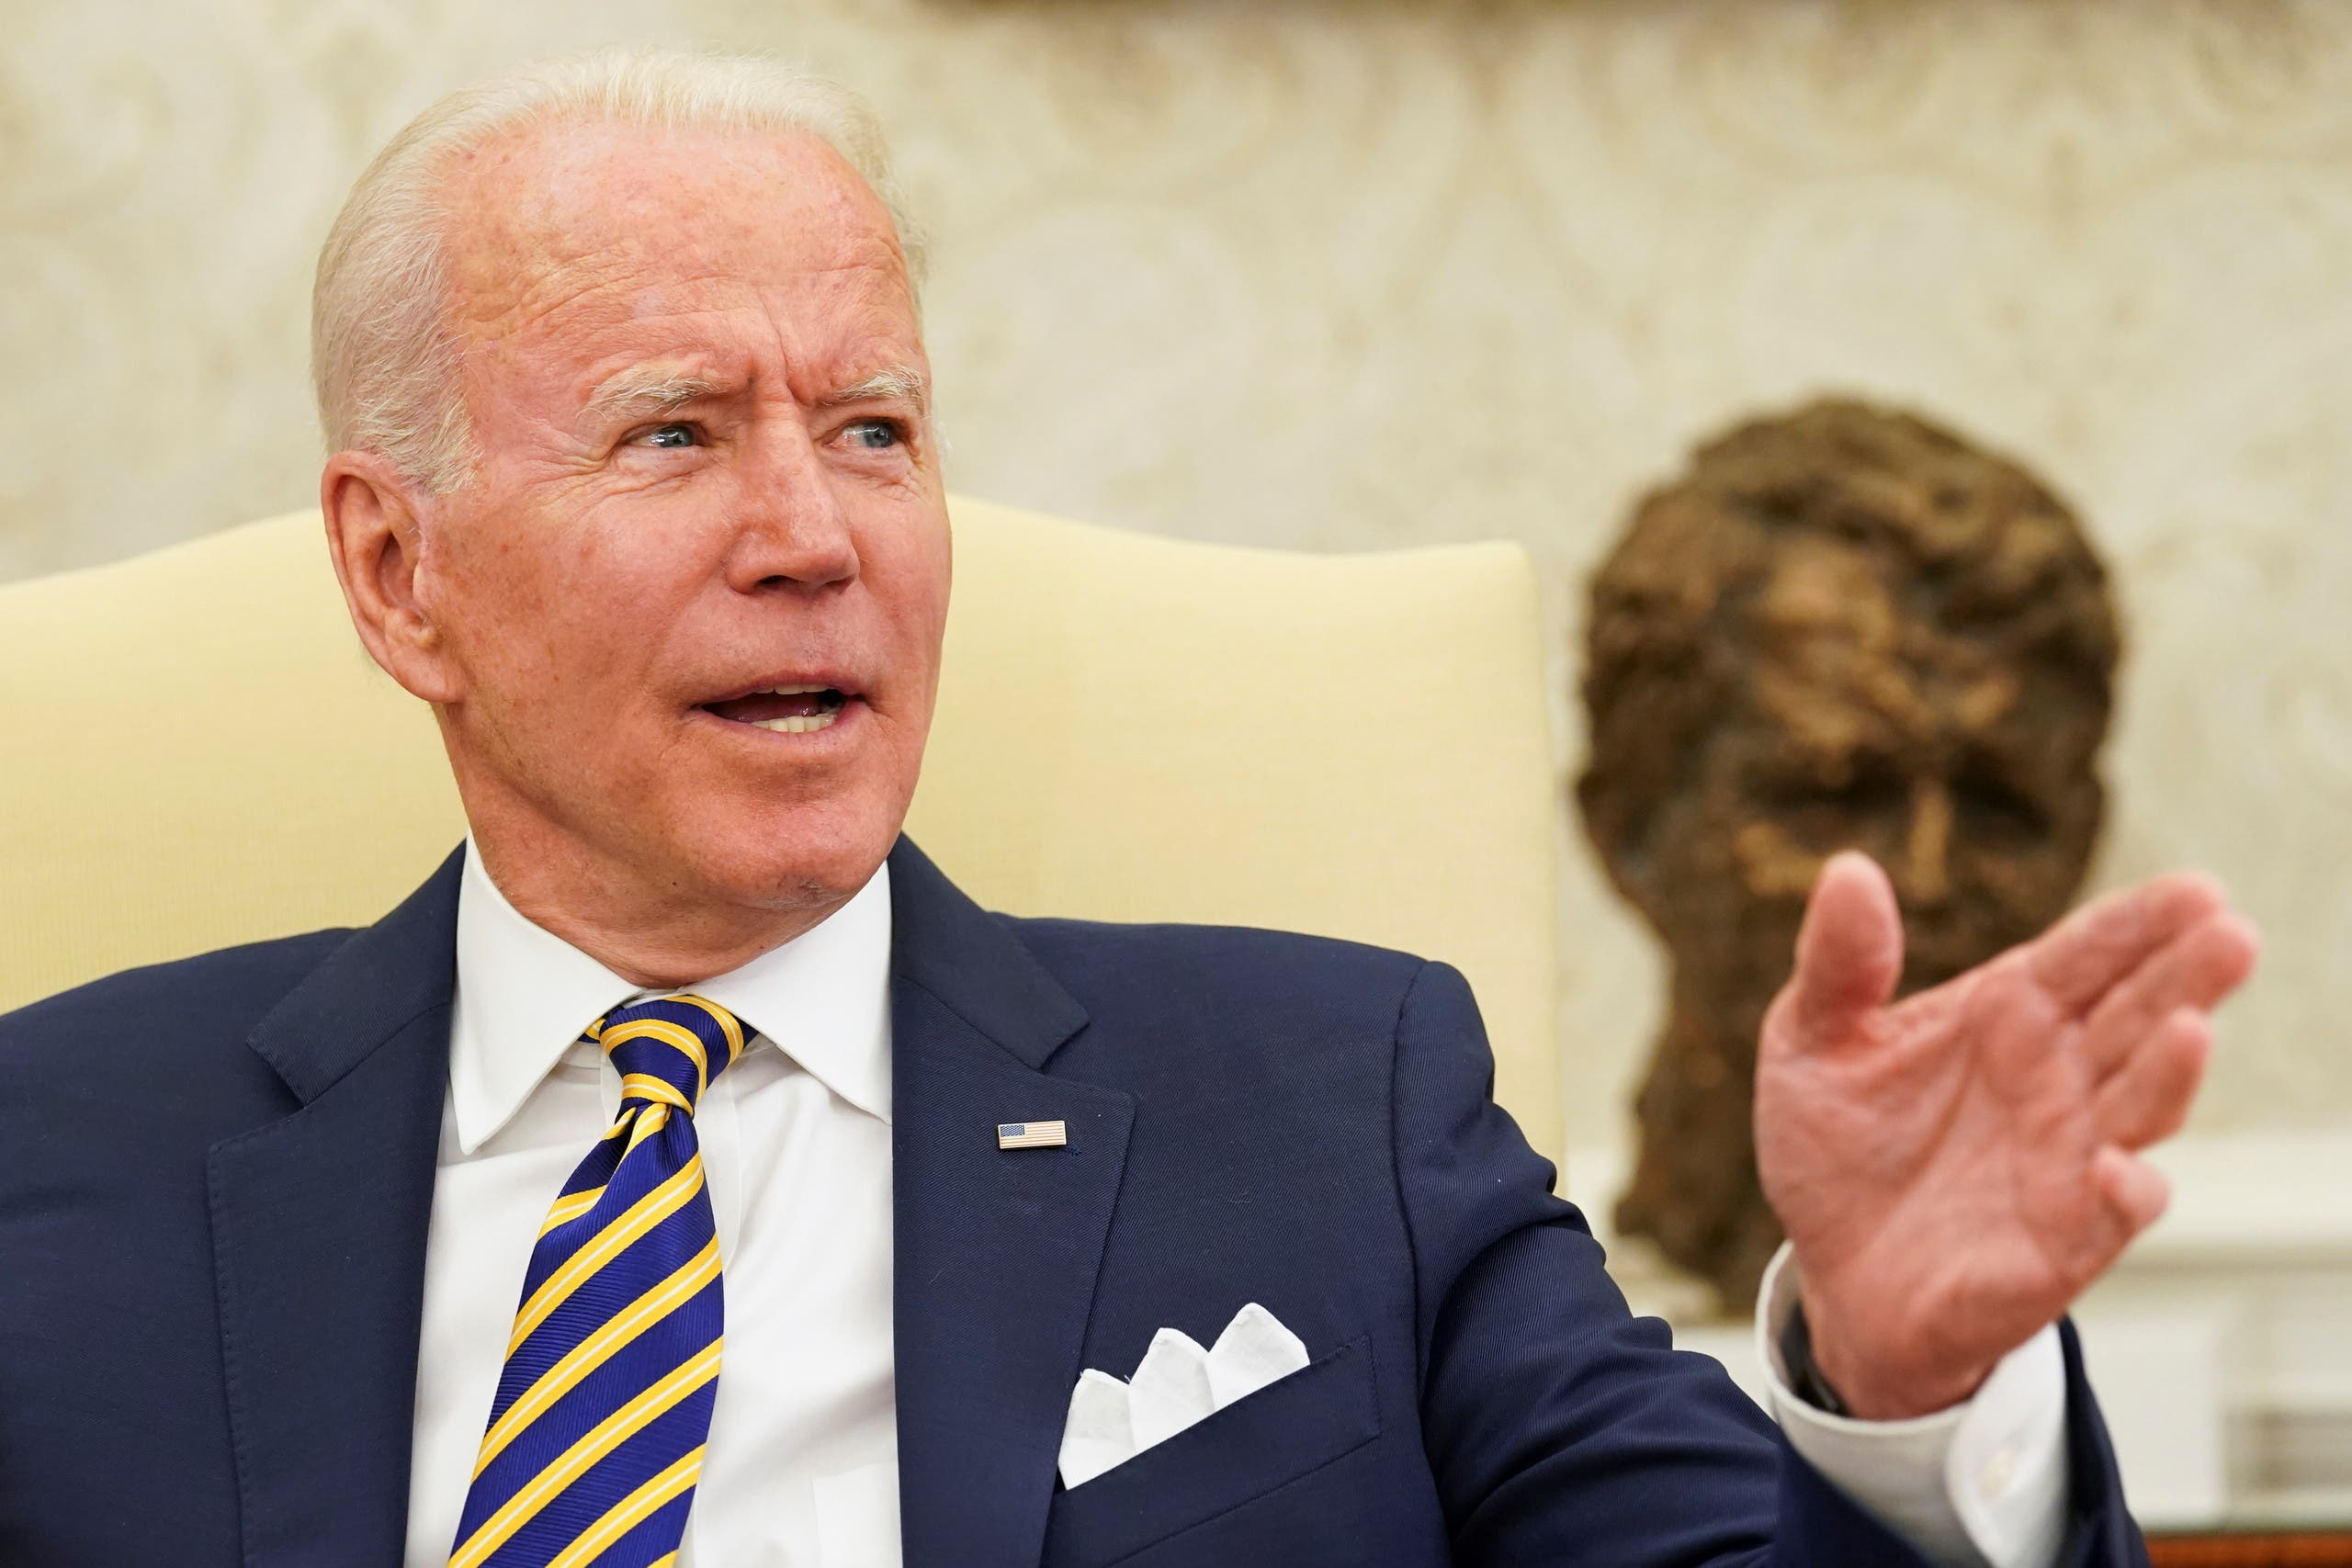 US President Joe Biden gestures during a meeting with Israel's President Reuven Rivlin at the White House in Washington, US June 28, 2021. (Reuters)